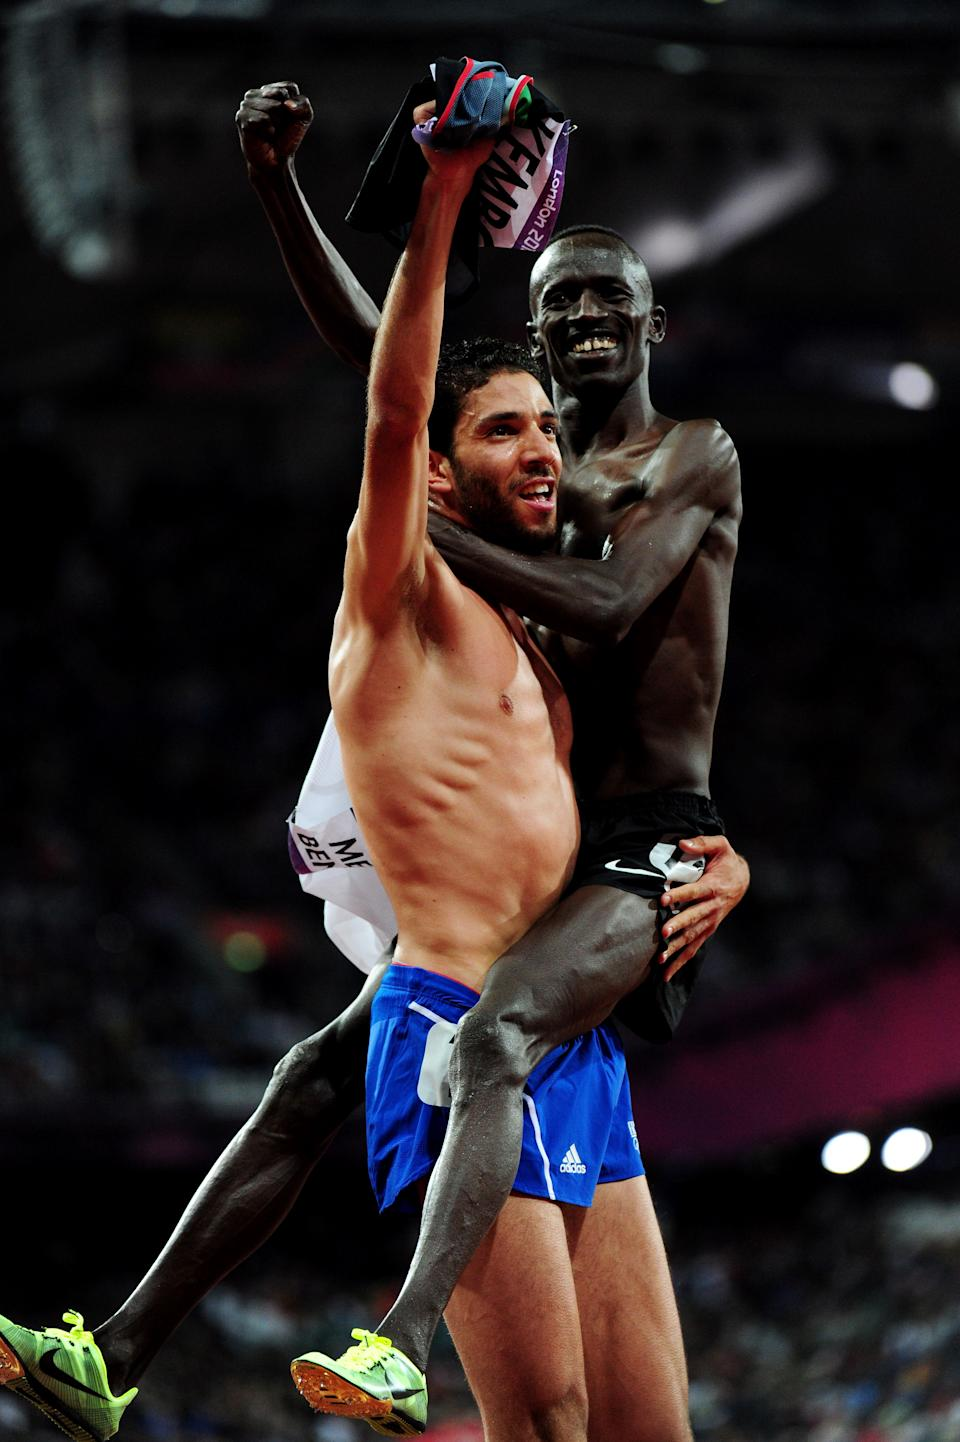 LONDON, ENGLAND - AUGUST 05: Silver medalist Mahiedine Mekhissi-Benabbad of France celebrates with gold medalist Ezekiel Kemboi of Kenya celebrate after the Men's 3000m Steeplechase on Day 9 of the London 2012 Olympic Games at the Olympic Stadium on August 5, 2012 in London, England. (Photo by Stu Forster/Getty Images)